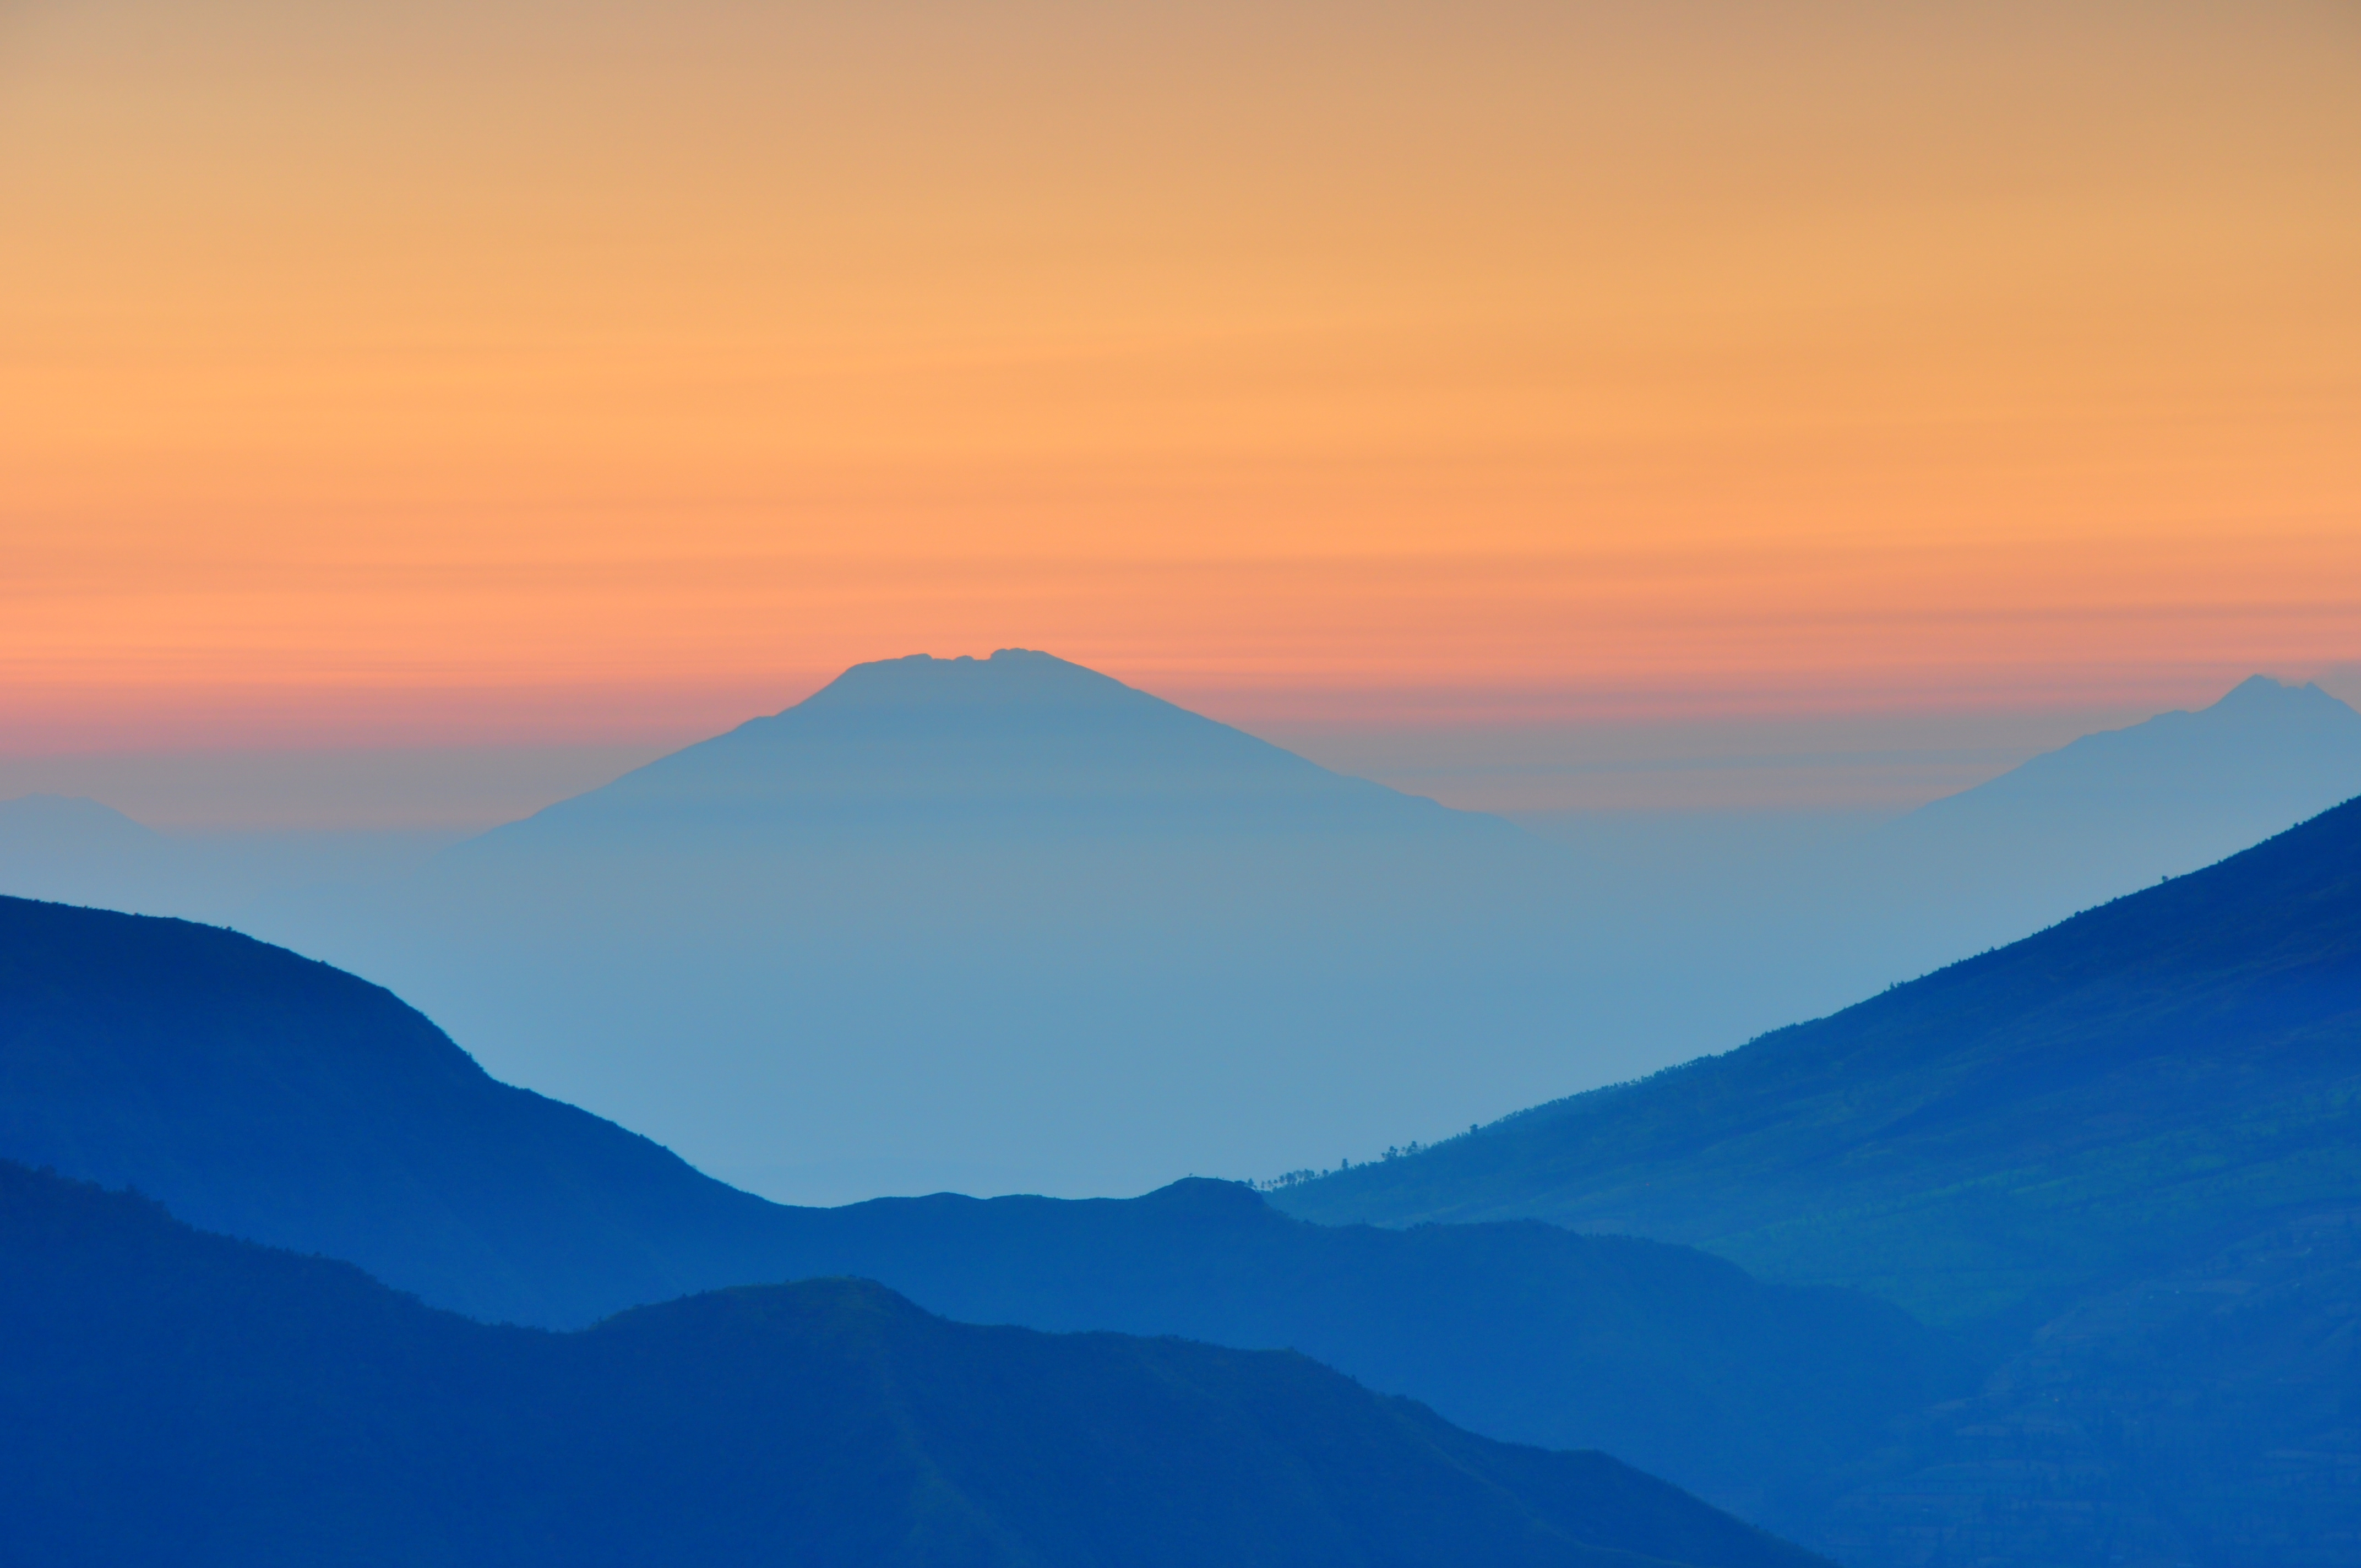 Mountains at sunrise, morning, blue, sun, mountains, valleys, hills, blue, orange, sunset, nature, oudoors